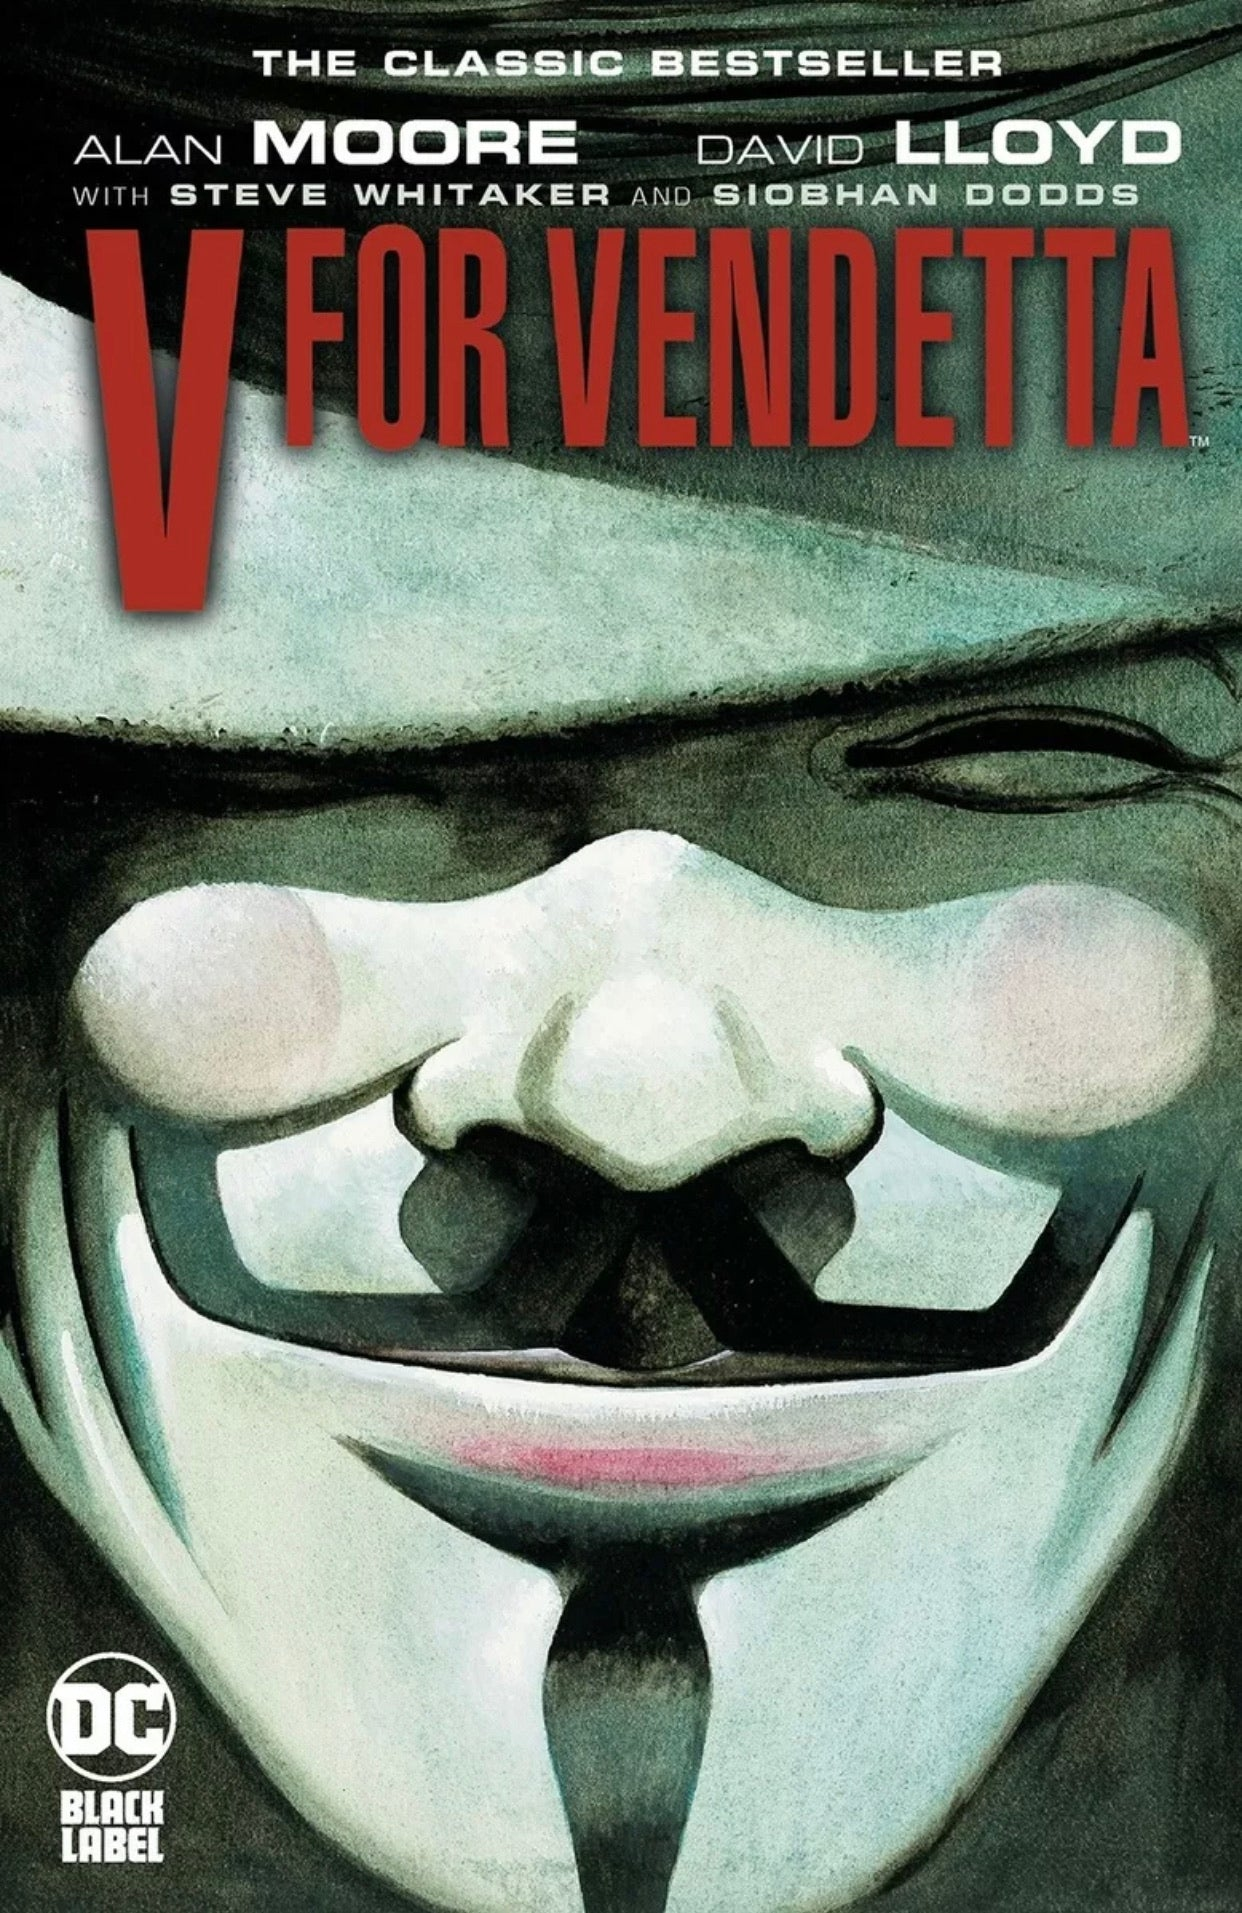 🚨💥 V FOR VENDETTA BLACK LABEL EDITION TPB DC Brand New 12/15/2020 Release